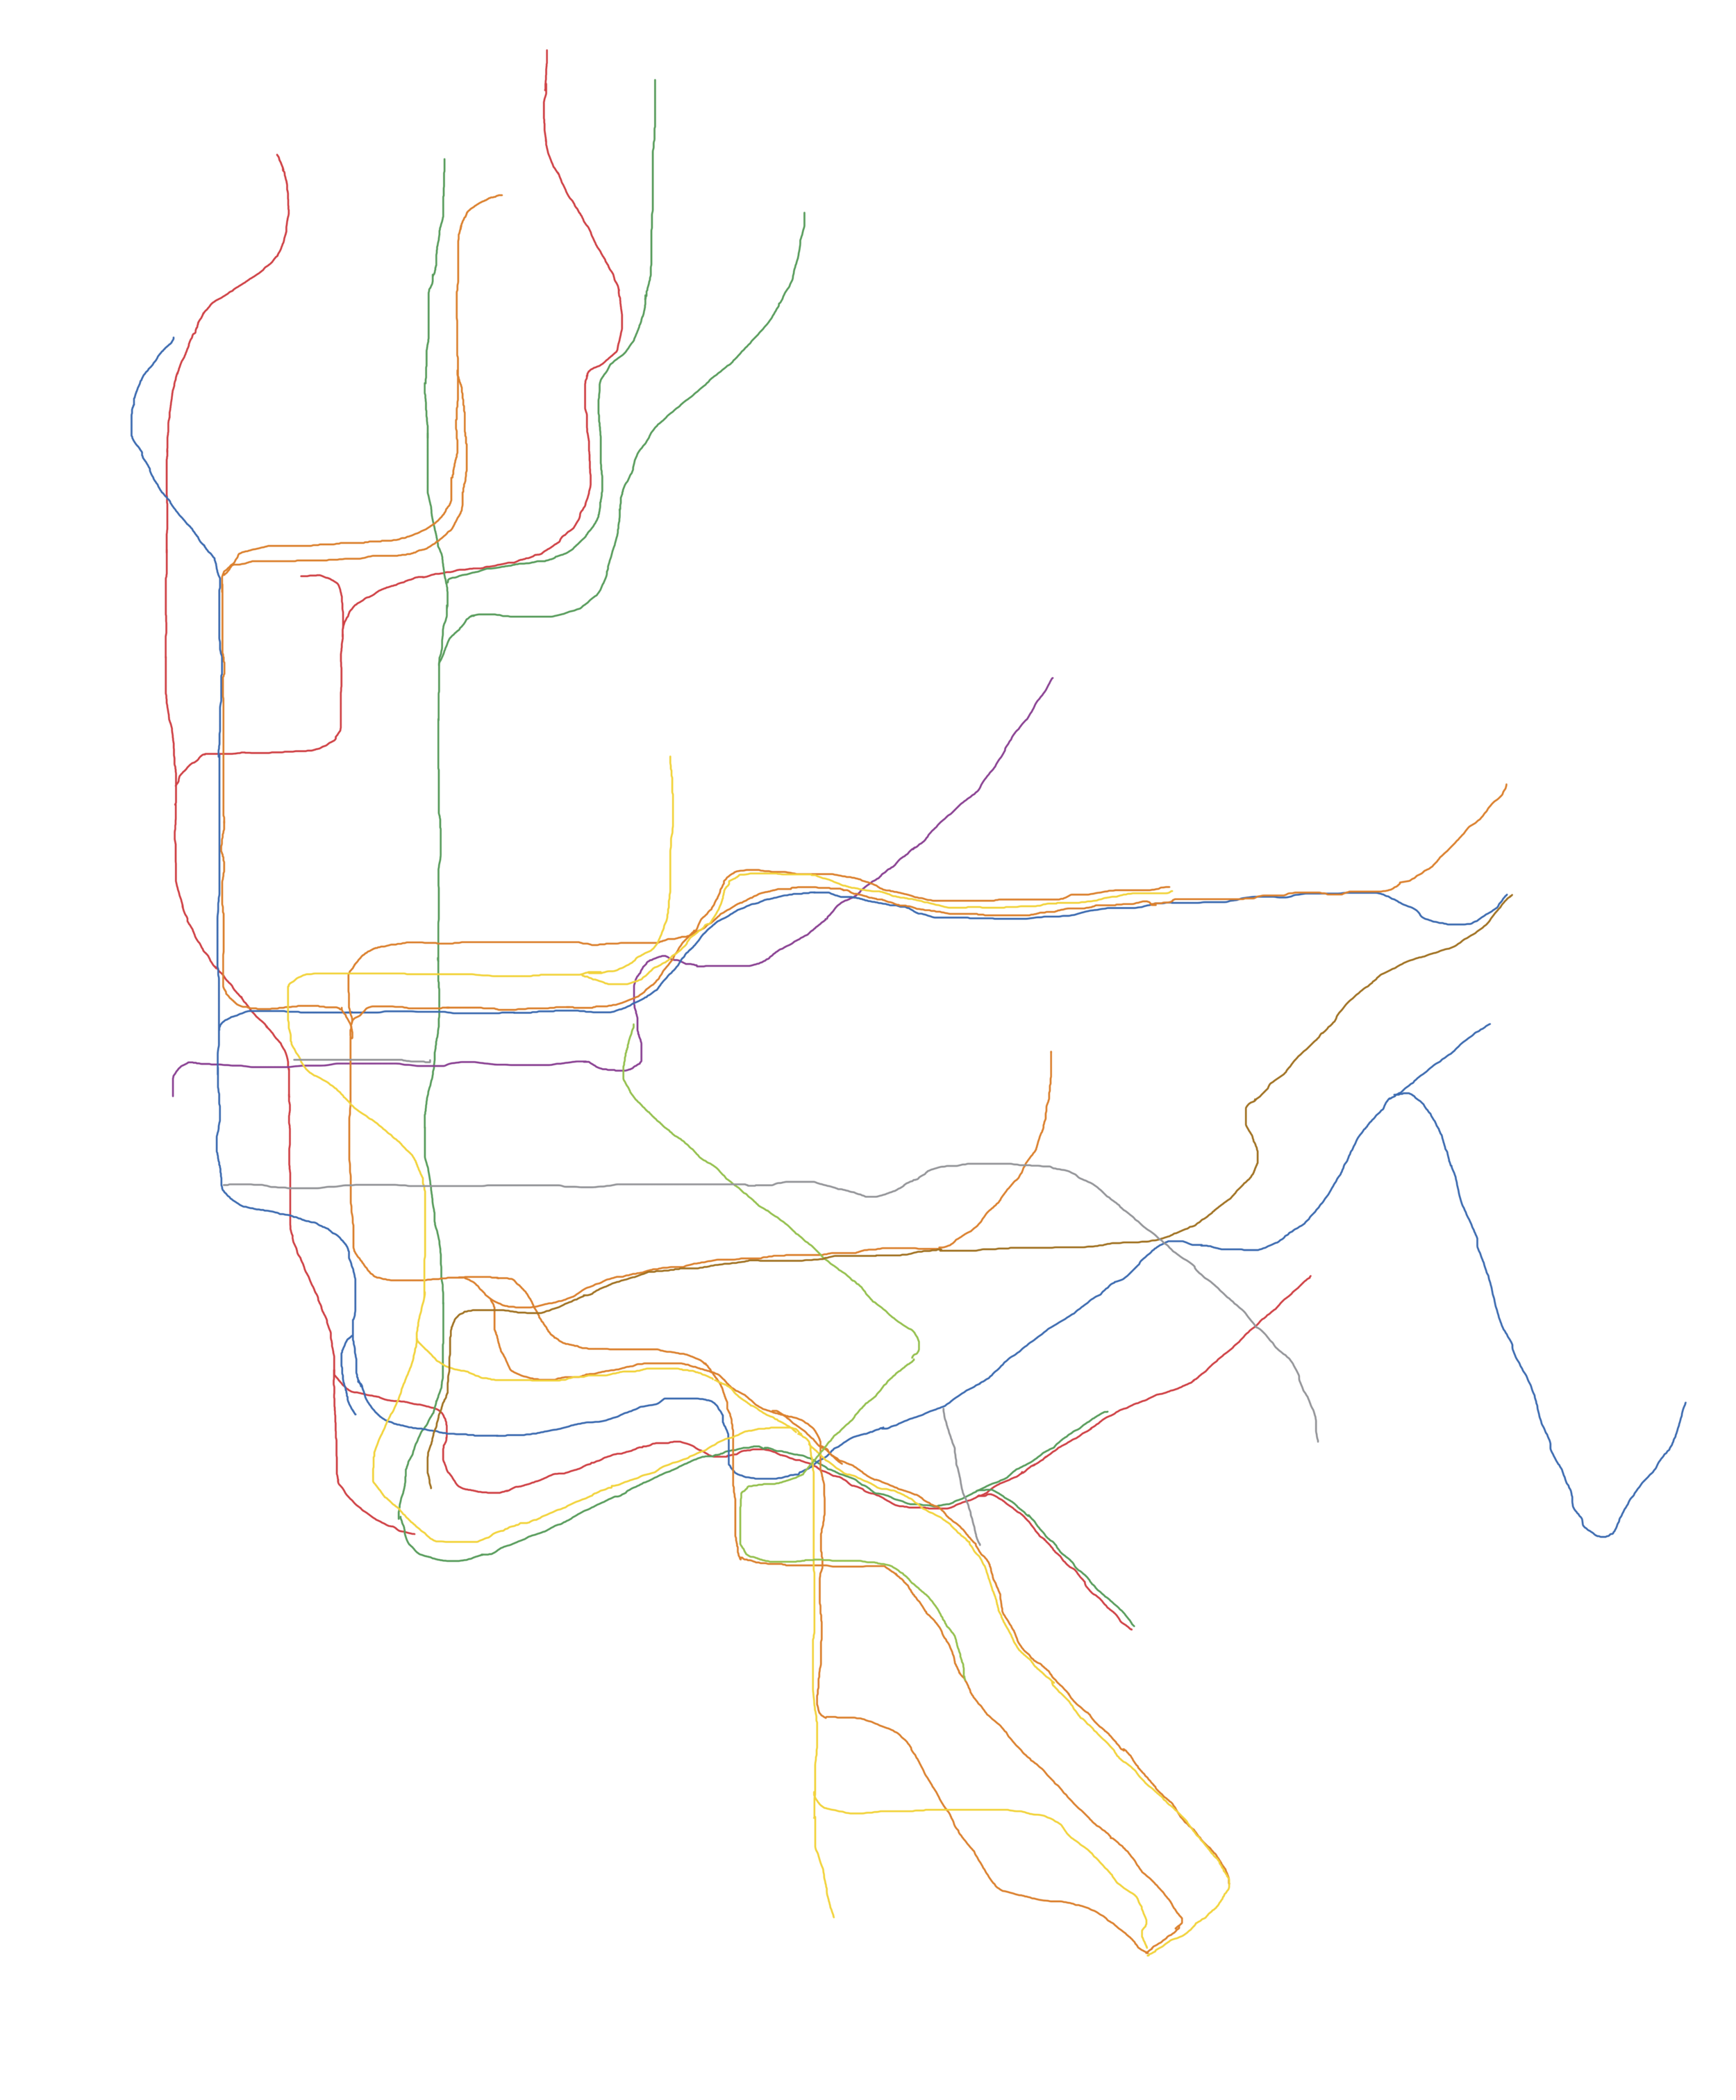 mta line map.png